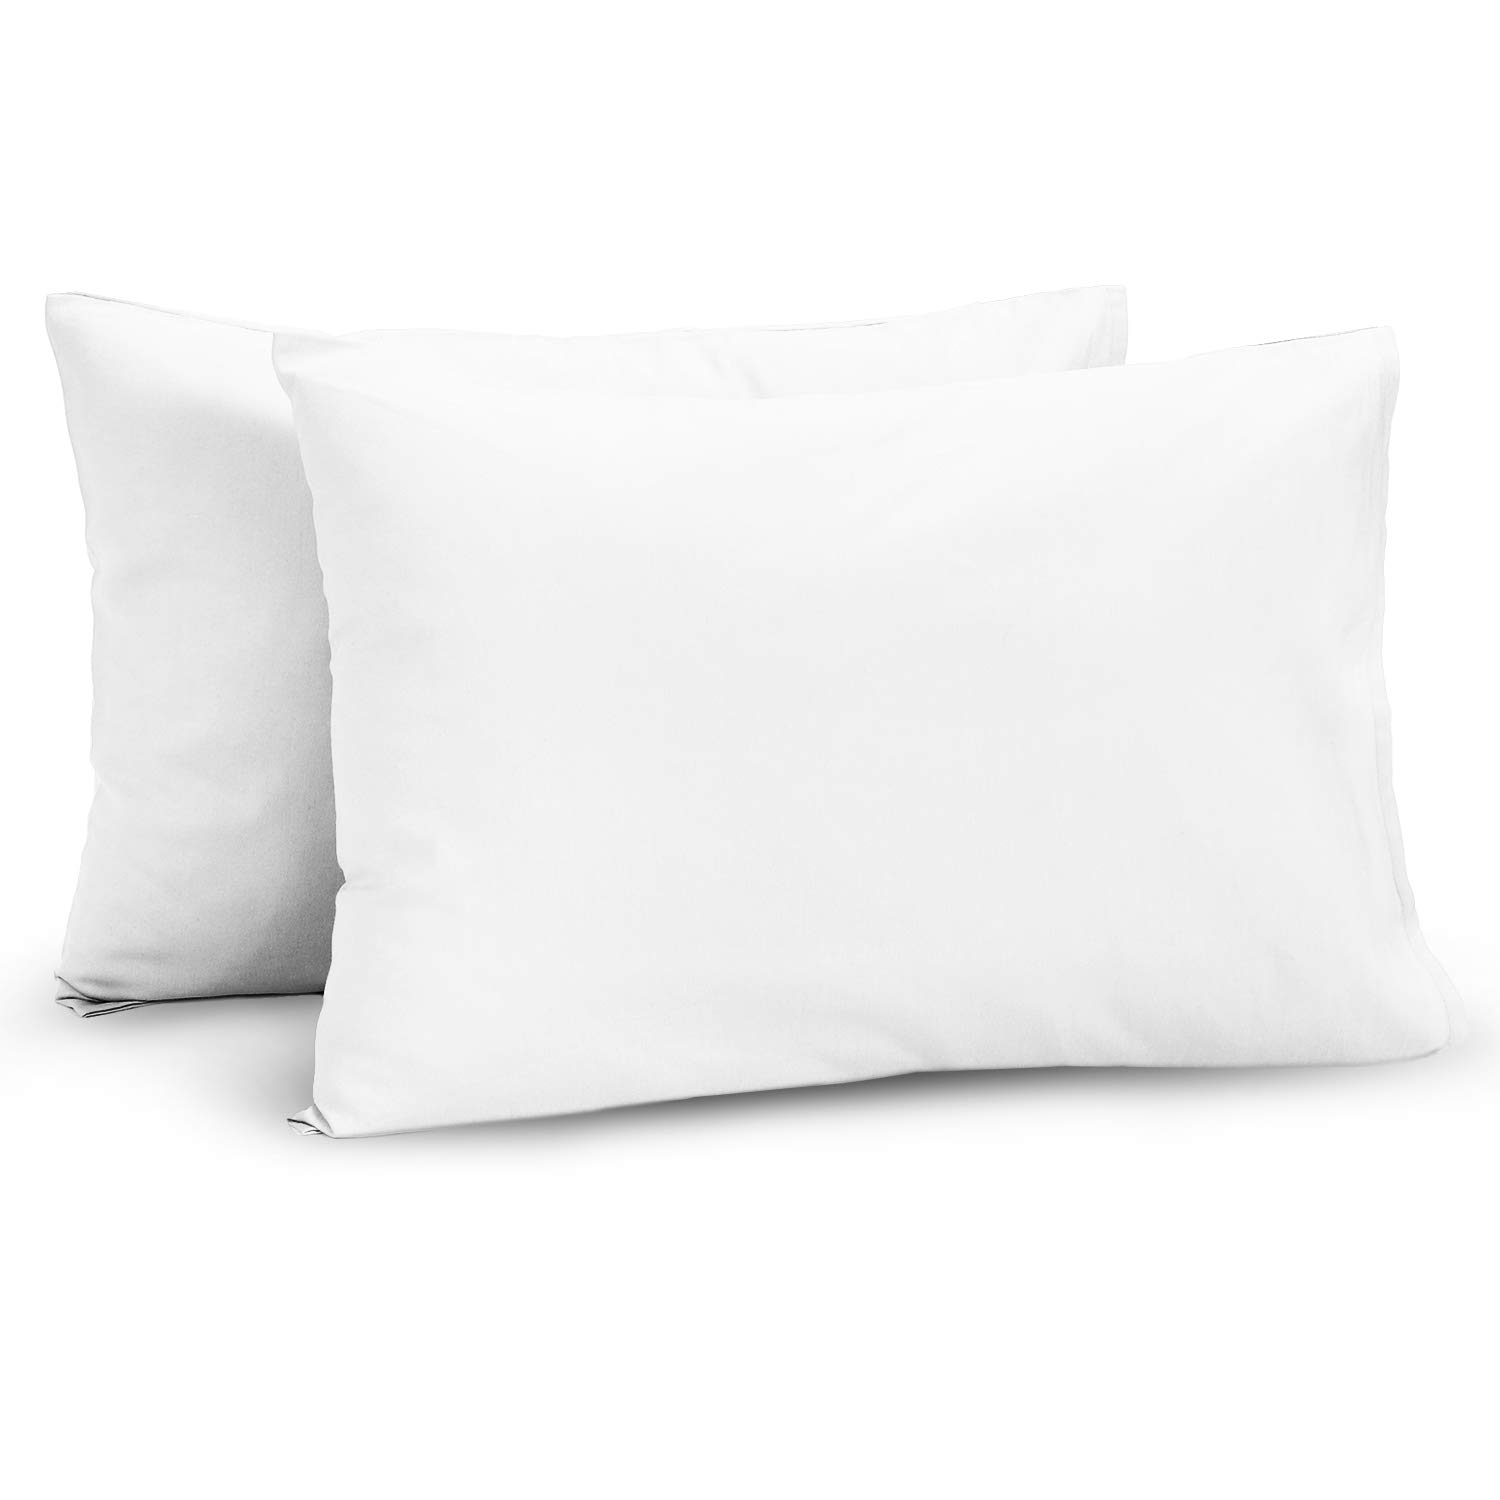 TILLYOU Cotton Collection Breathable Toddler Pillowcases Set of 2 Machine Washable & Super Soft, 14x20 - Fits Pillows Sized 12x16 13x18 or 14x19, Envelope Closure Travel Pillow Case Cover, White